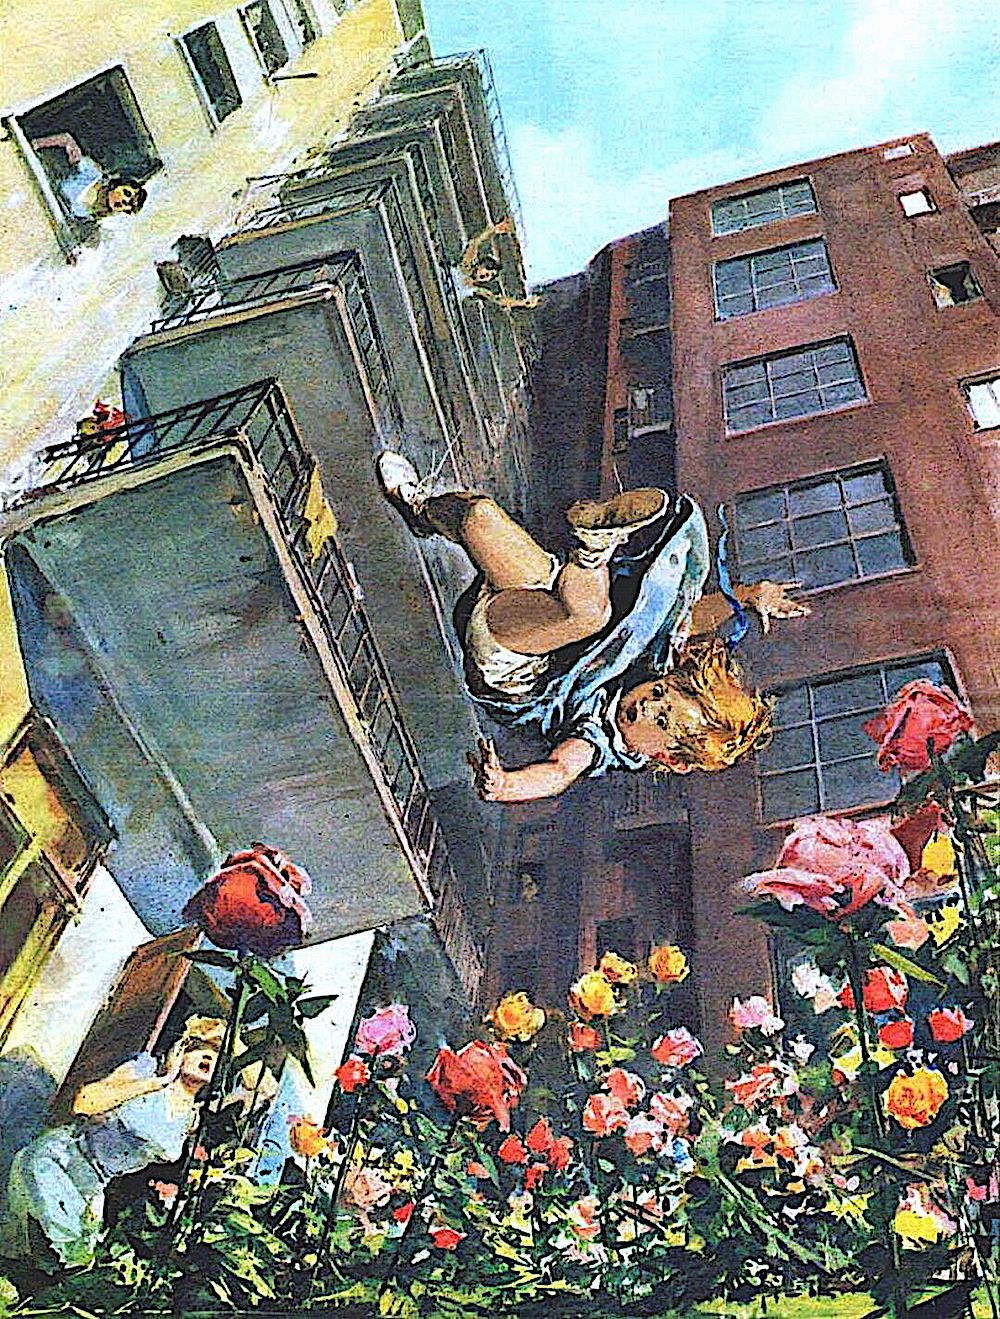 a Walter Molino Illustration of a child falling from a high building